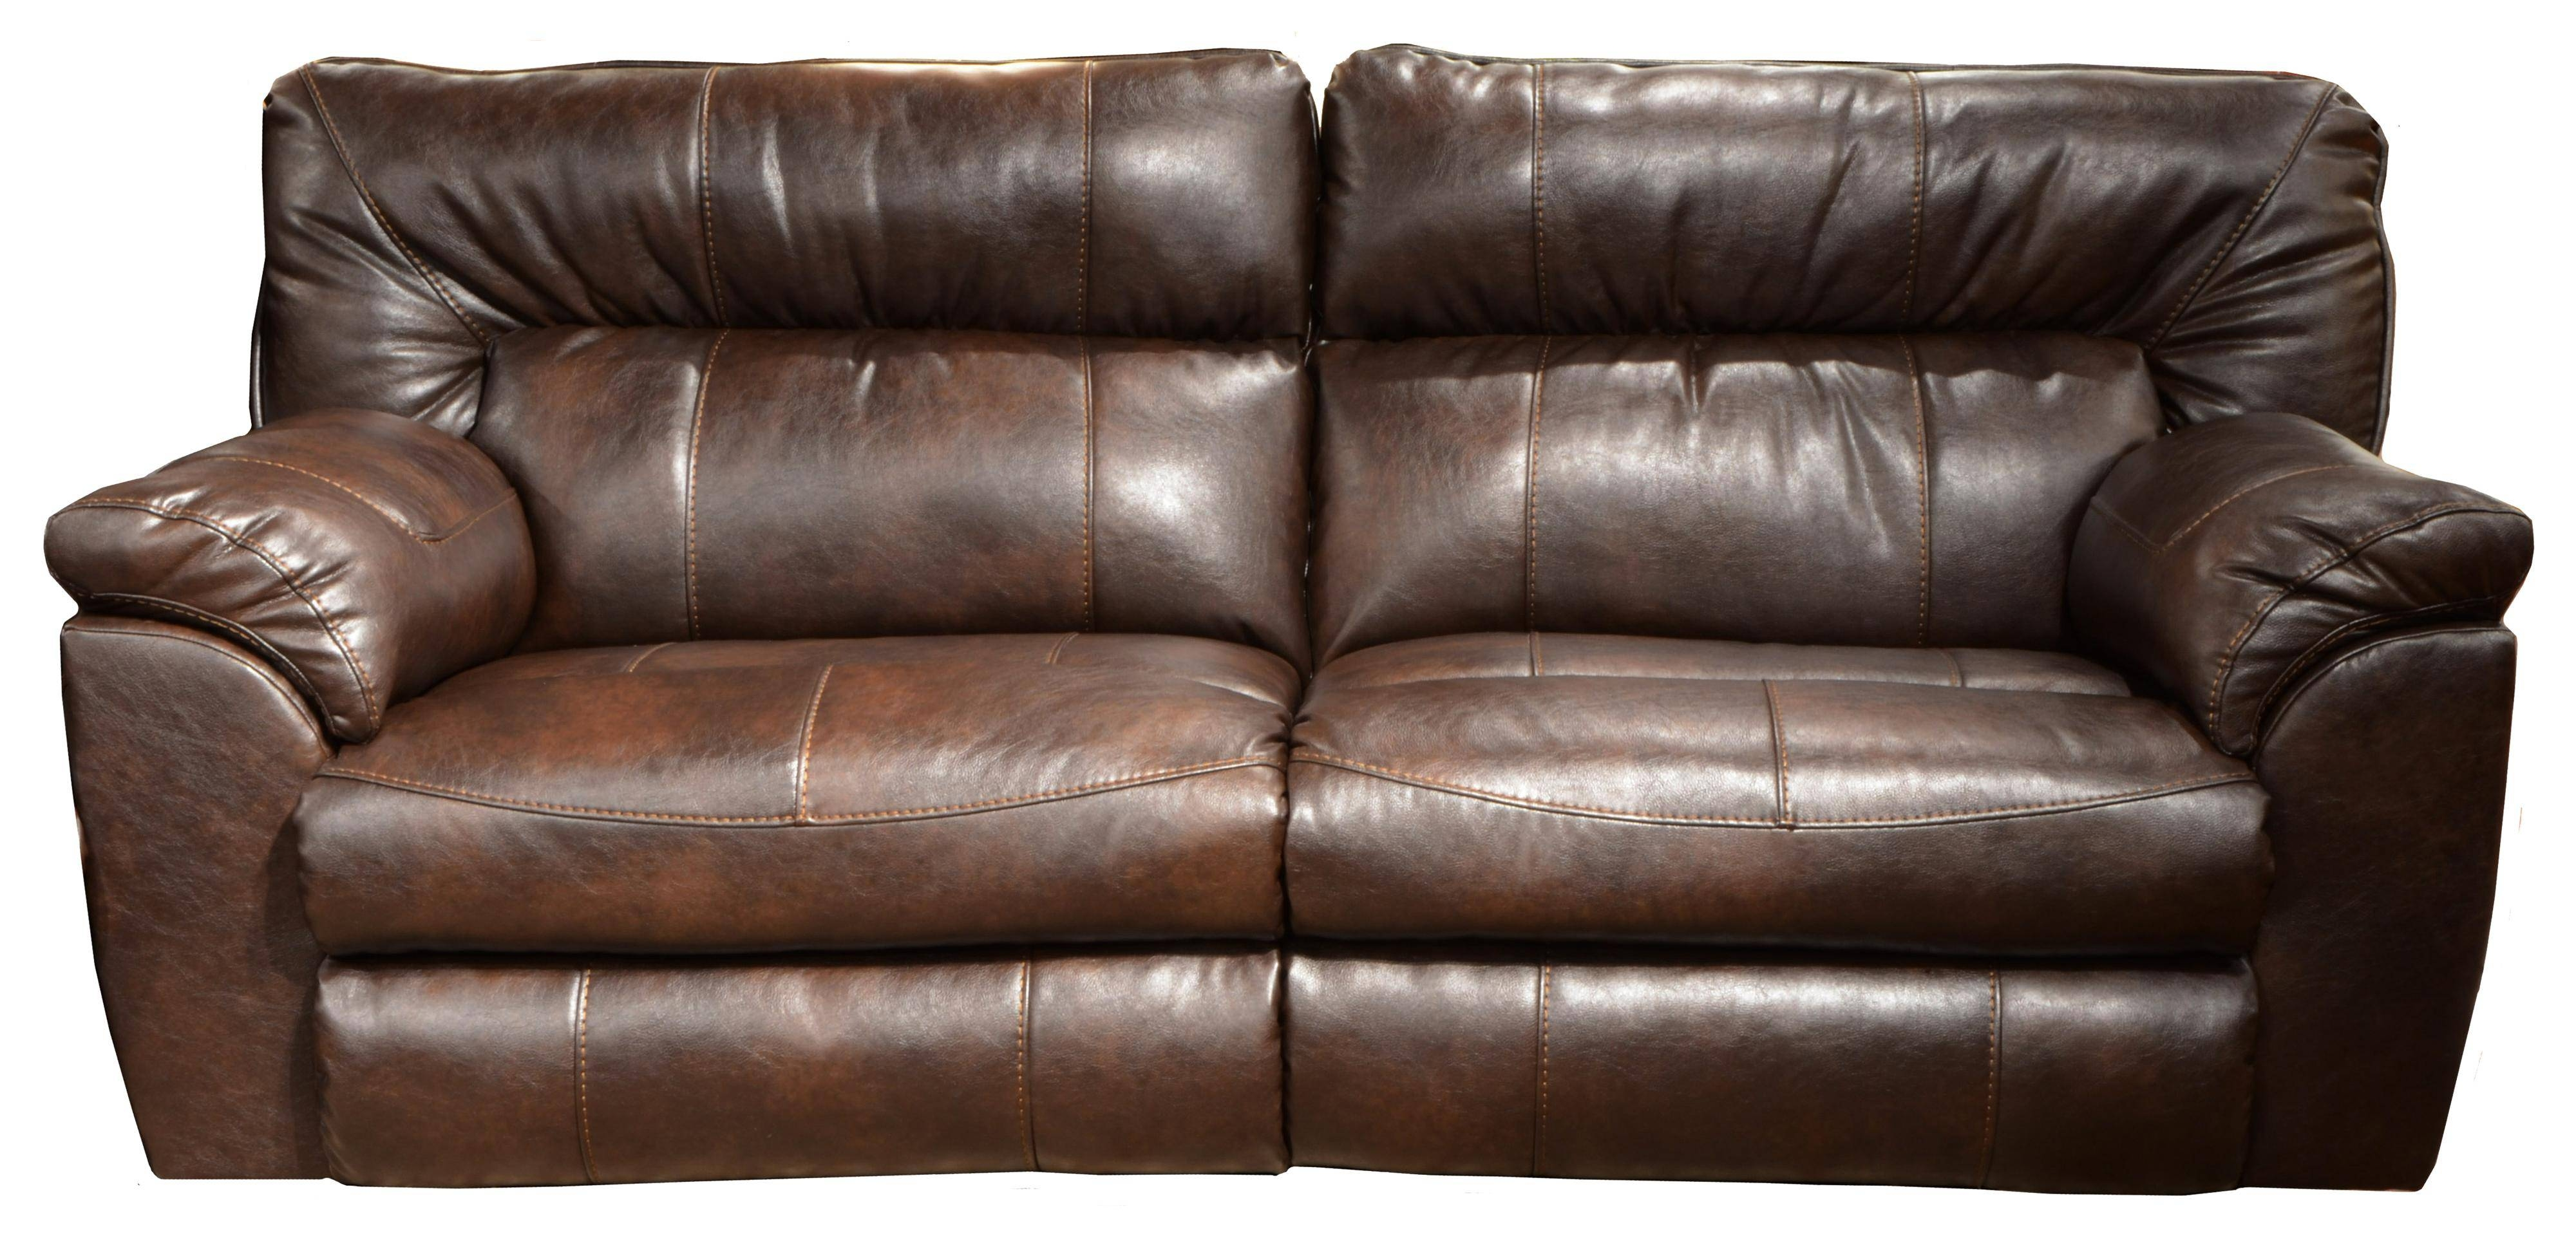 Furniture: Captivating Catnapper Recliner For Best Furniture Idea regarding Catnapper Reclining Sofas (Image 11 of 15)